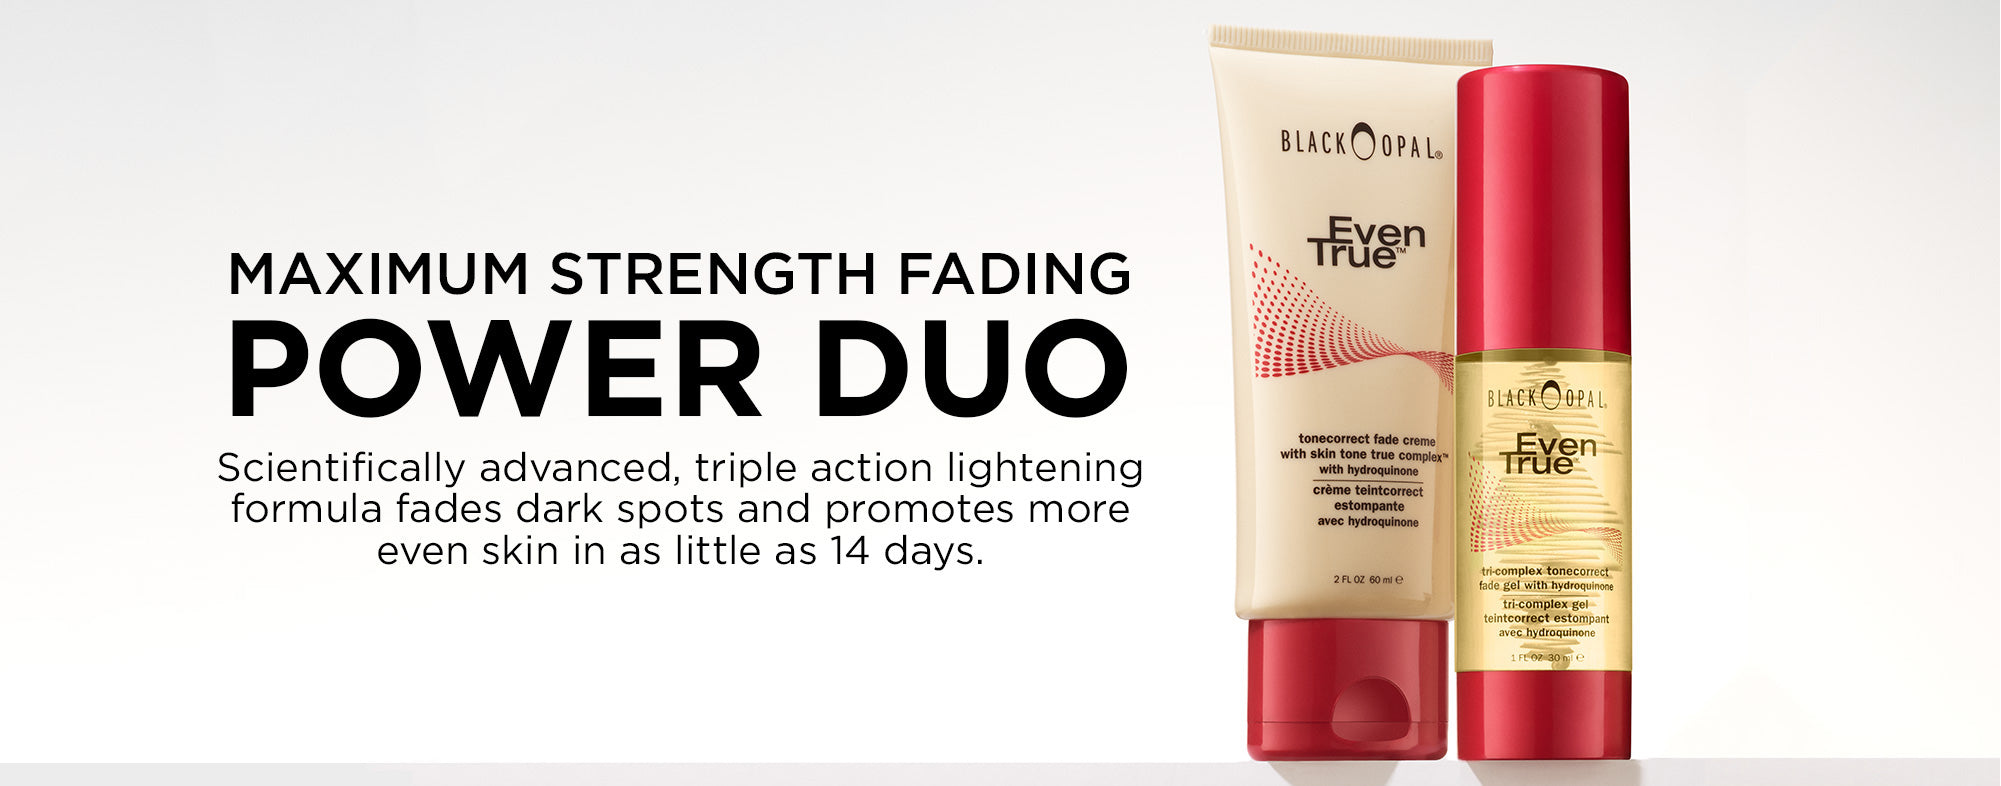 Maximum strength fading POWER DUO - Scientifically advanced, triple action lightening formula fades dark spots and promotes more even skin in as little as 14 days.